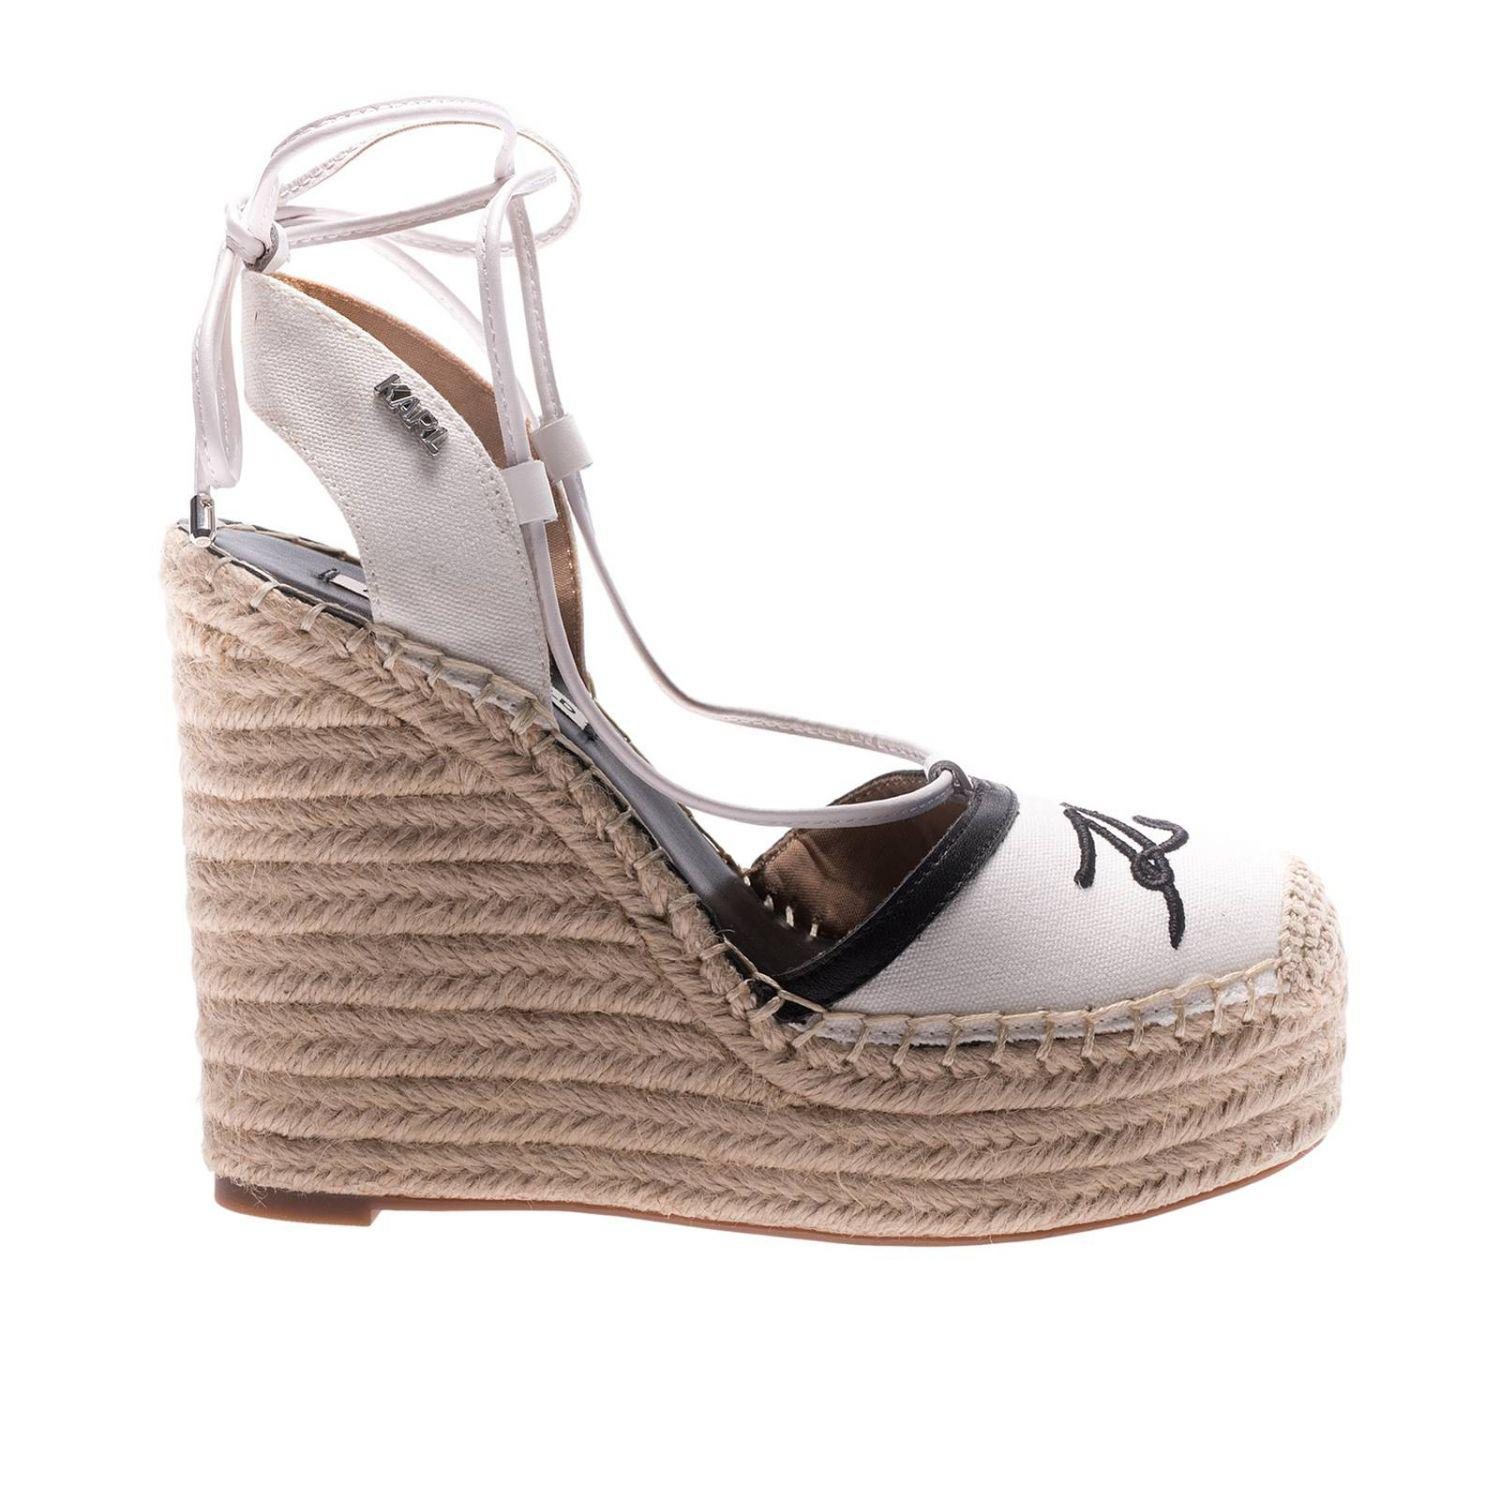 Karl Lagerfeld Leather Wedge Shoes